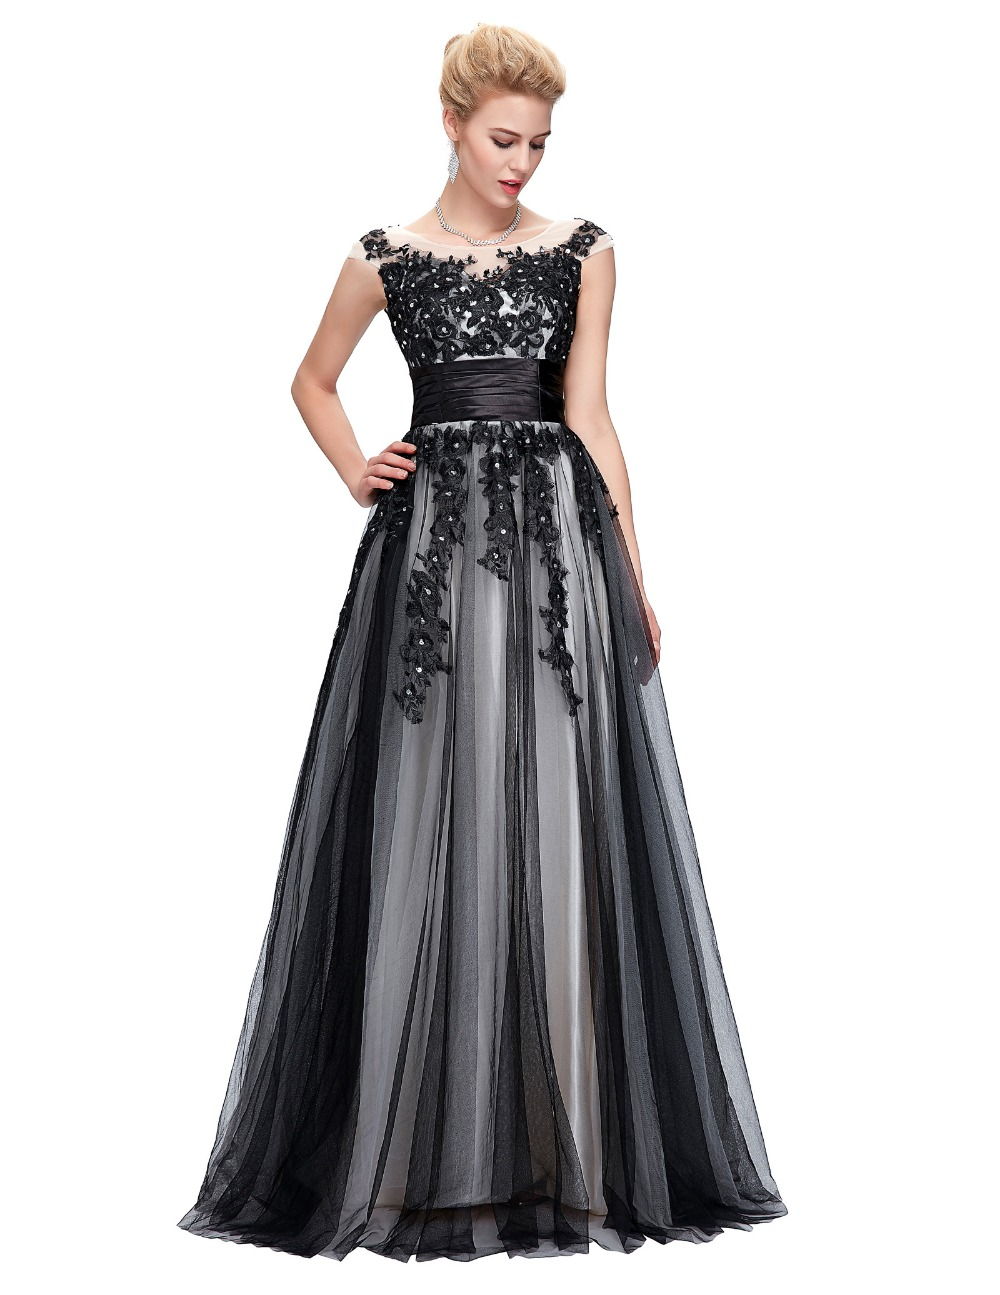 93d9cc143f Robe de Soiree Longue Sexy Lace Applique Evening Dresses Long Ball Gown  Luxury Black Evening Dress for Women 2017 Cap Sleeve-in Evening Dresses  from ...